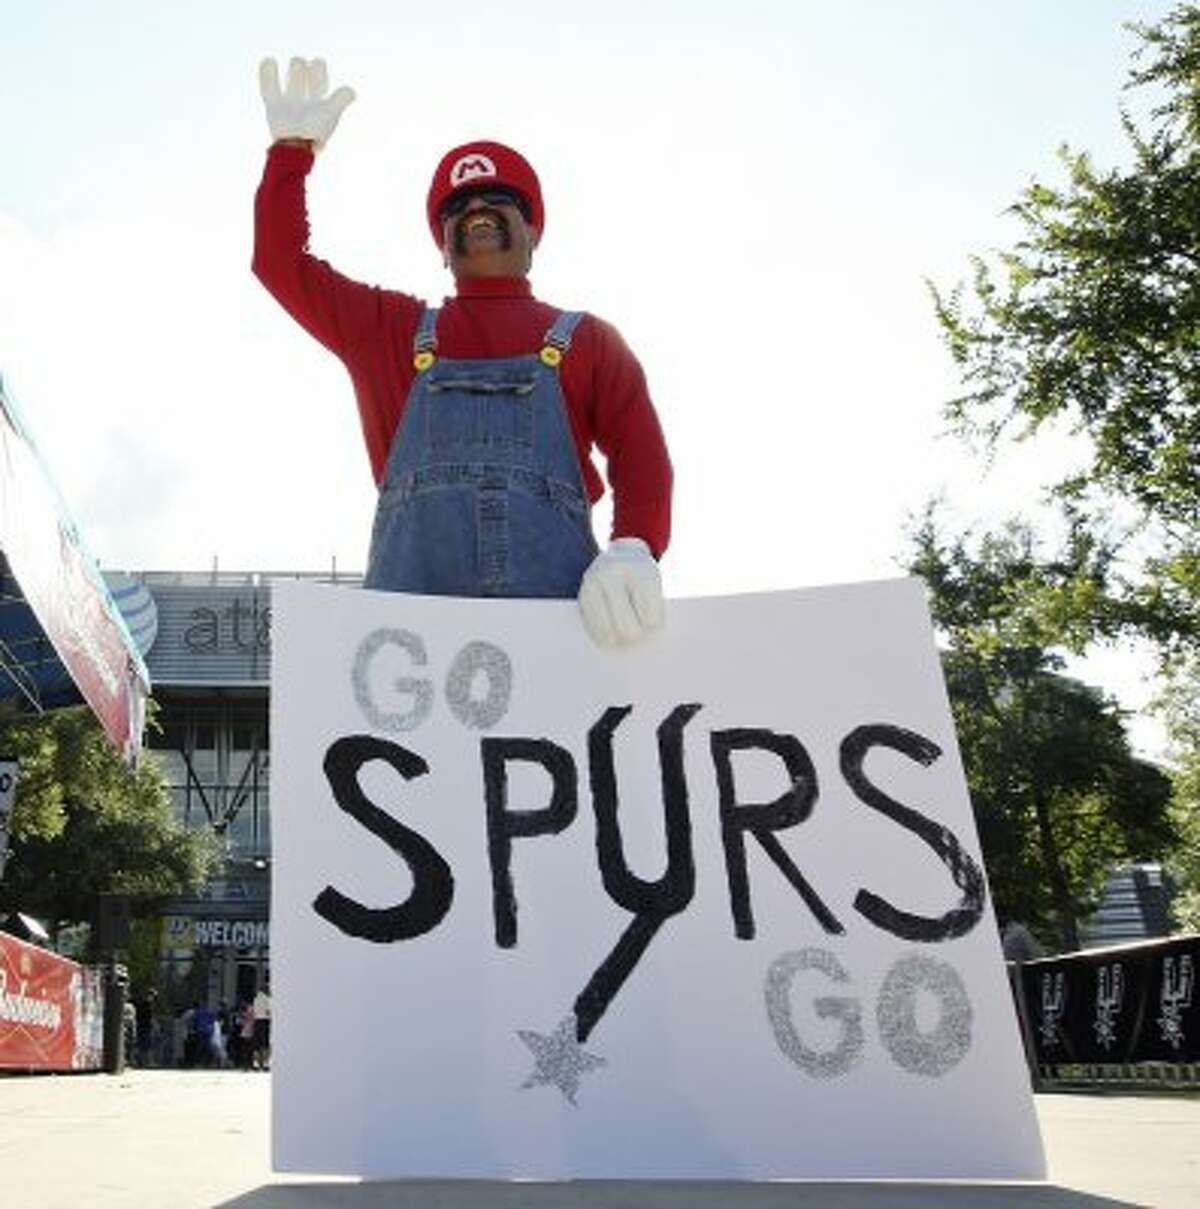 Martin Galdiano waves to other fans before the first game of the NBA Western Conference Finals in San Antonio, Texas, Sunday, May 27, 2012. (San Antonio Express-News)